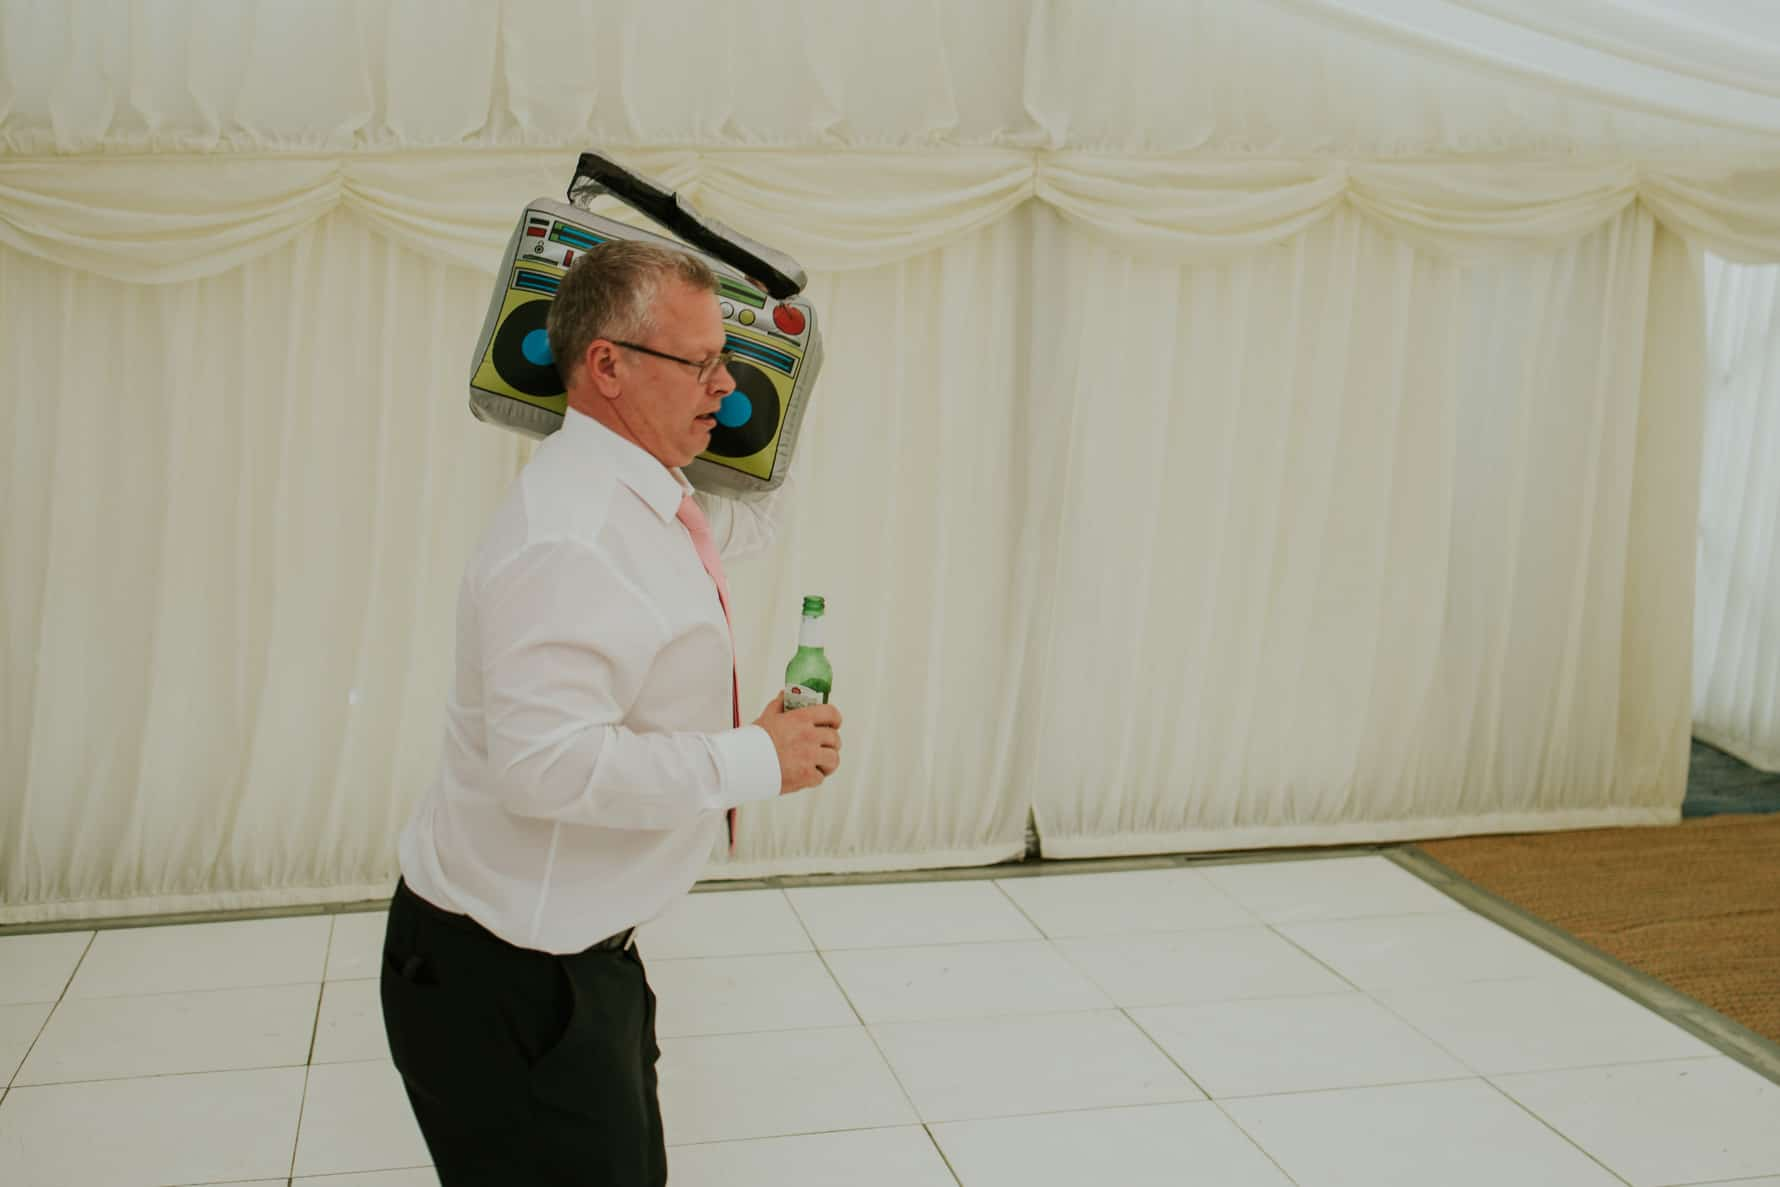 Man dancing with an inflatable stereo at a wedding